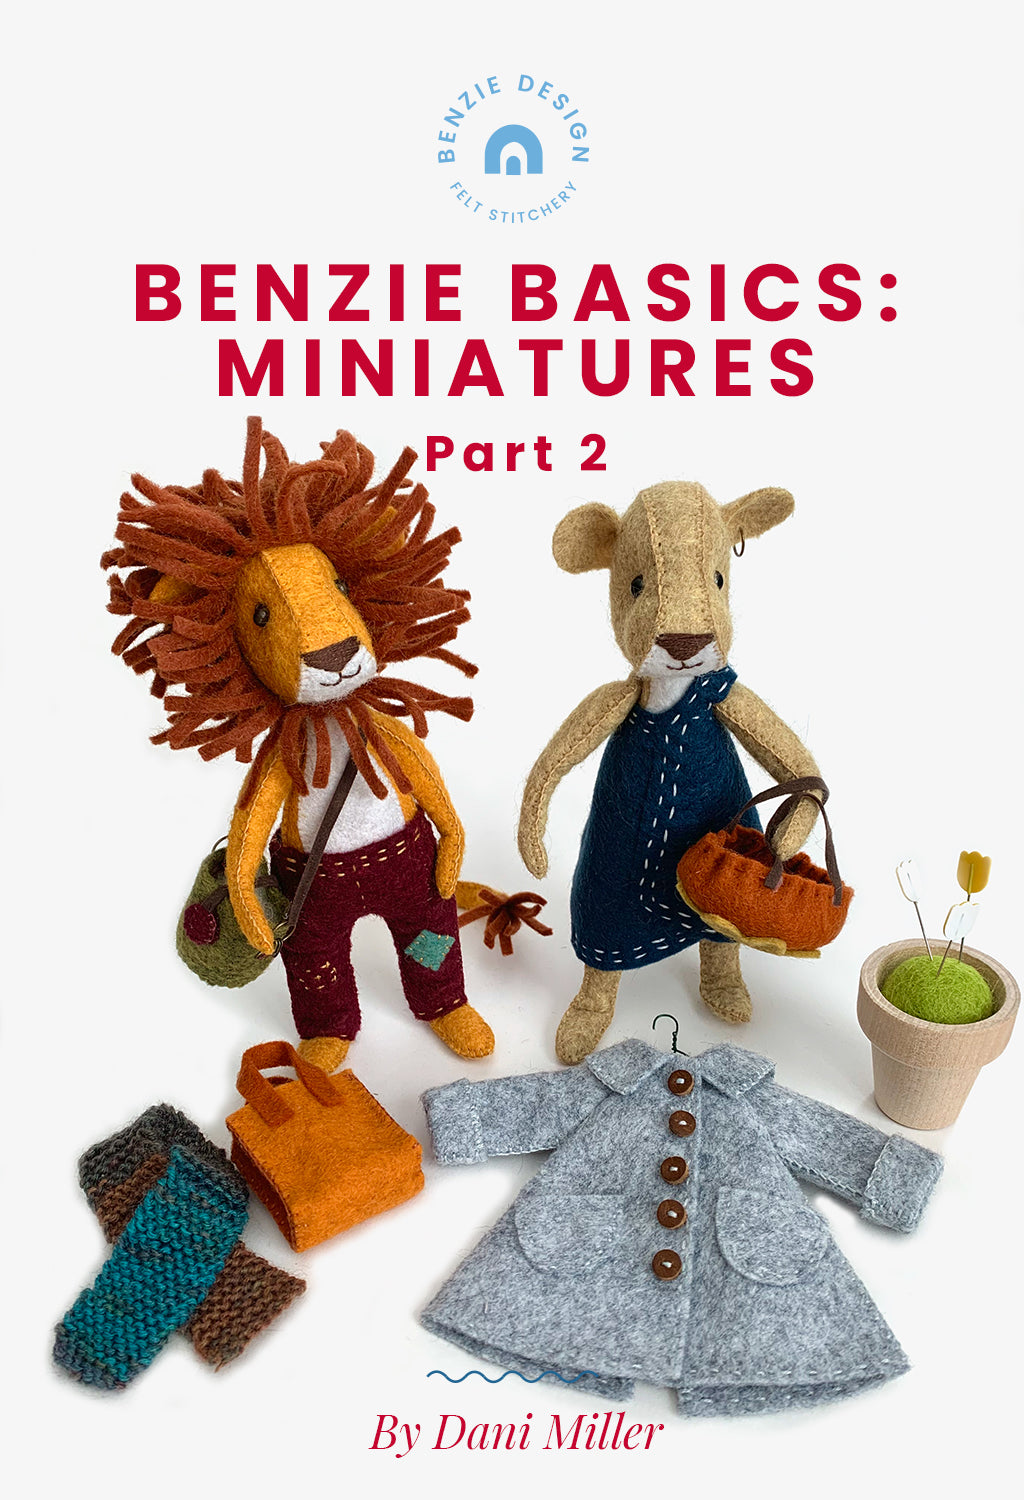 Benzie Basics: Miniatures Part 2